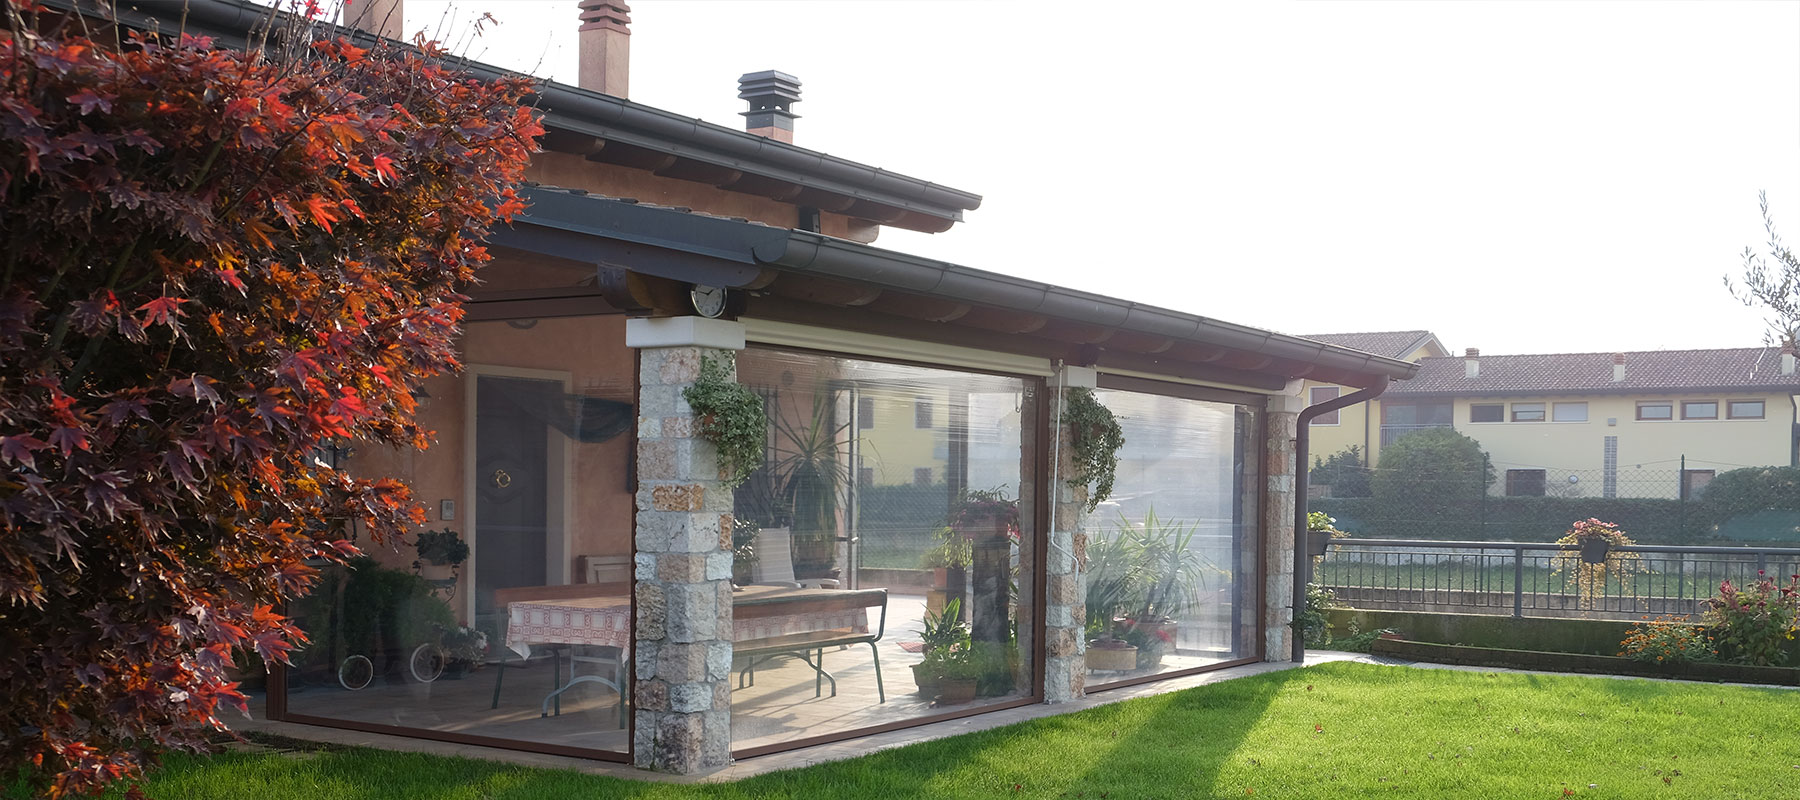 Preparati all'estate con una #pergola di Giorgio Marastoni!